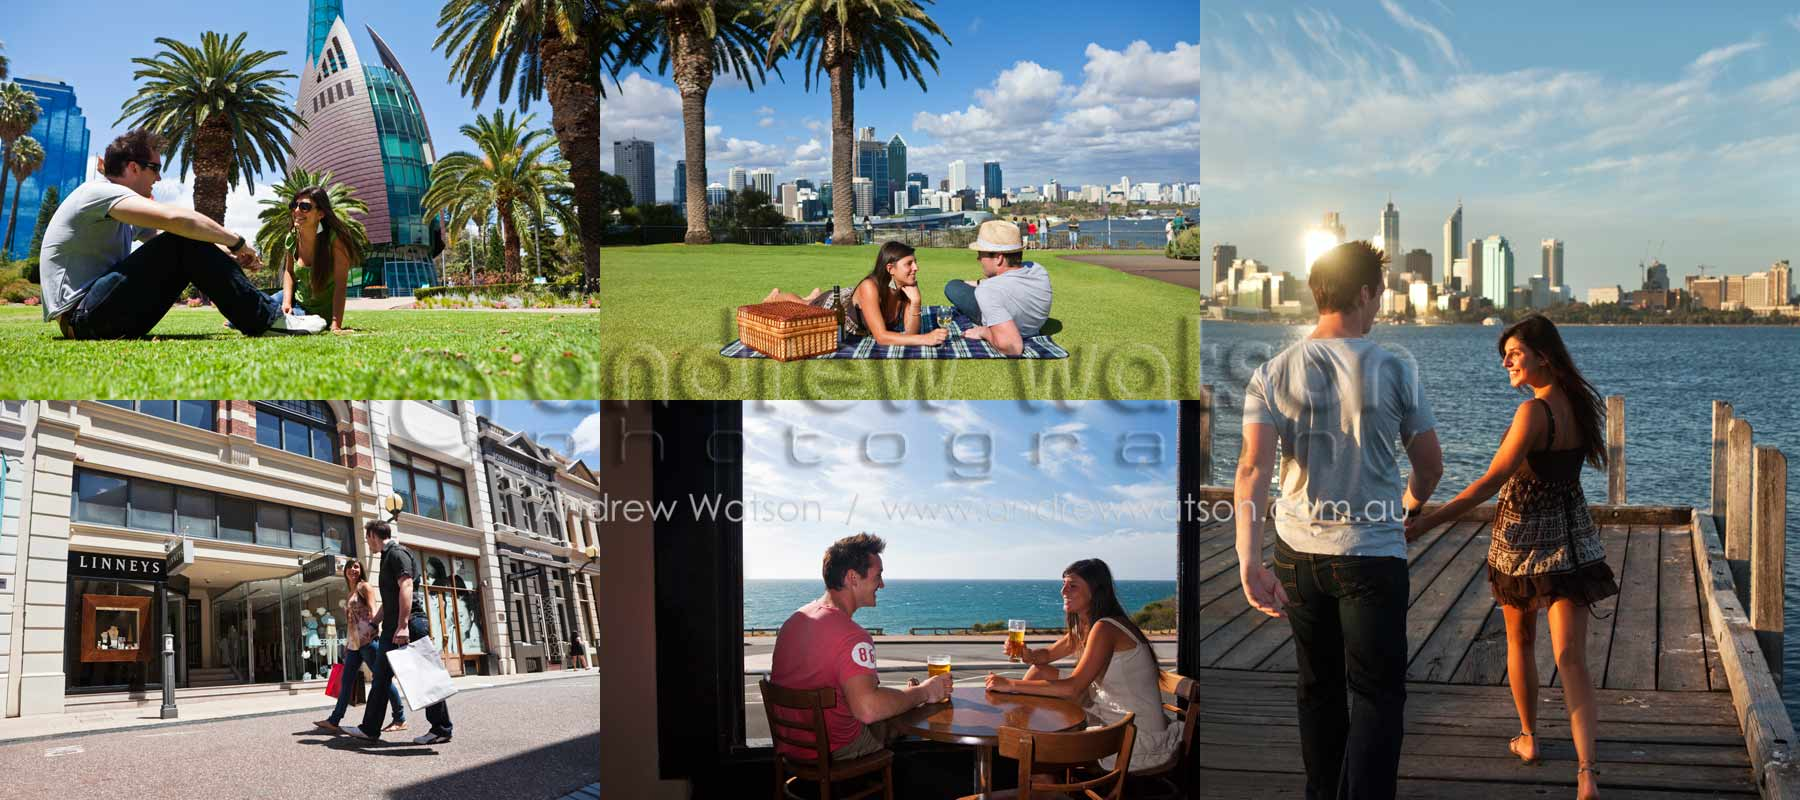 Tourism & Lifestyle Photography - Images of couple exploring the sights of Perth, Western Australia